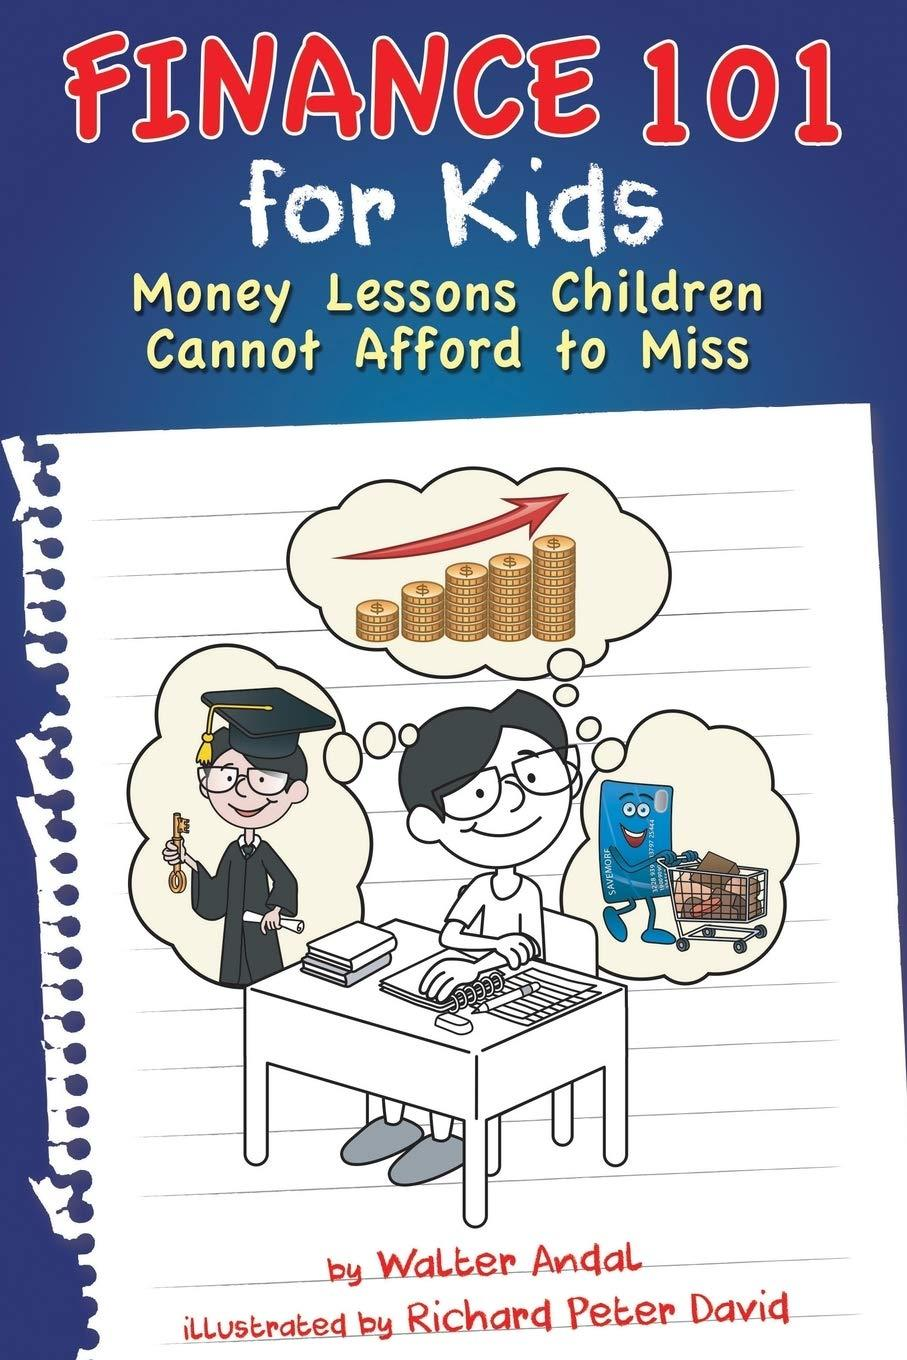 Finance 101 for Kids: Money Lessons Children Cannot Afford to Miss - Tolerant Planet